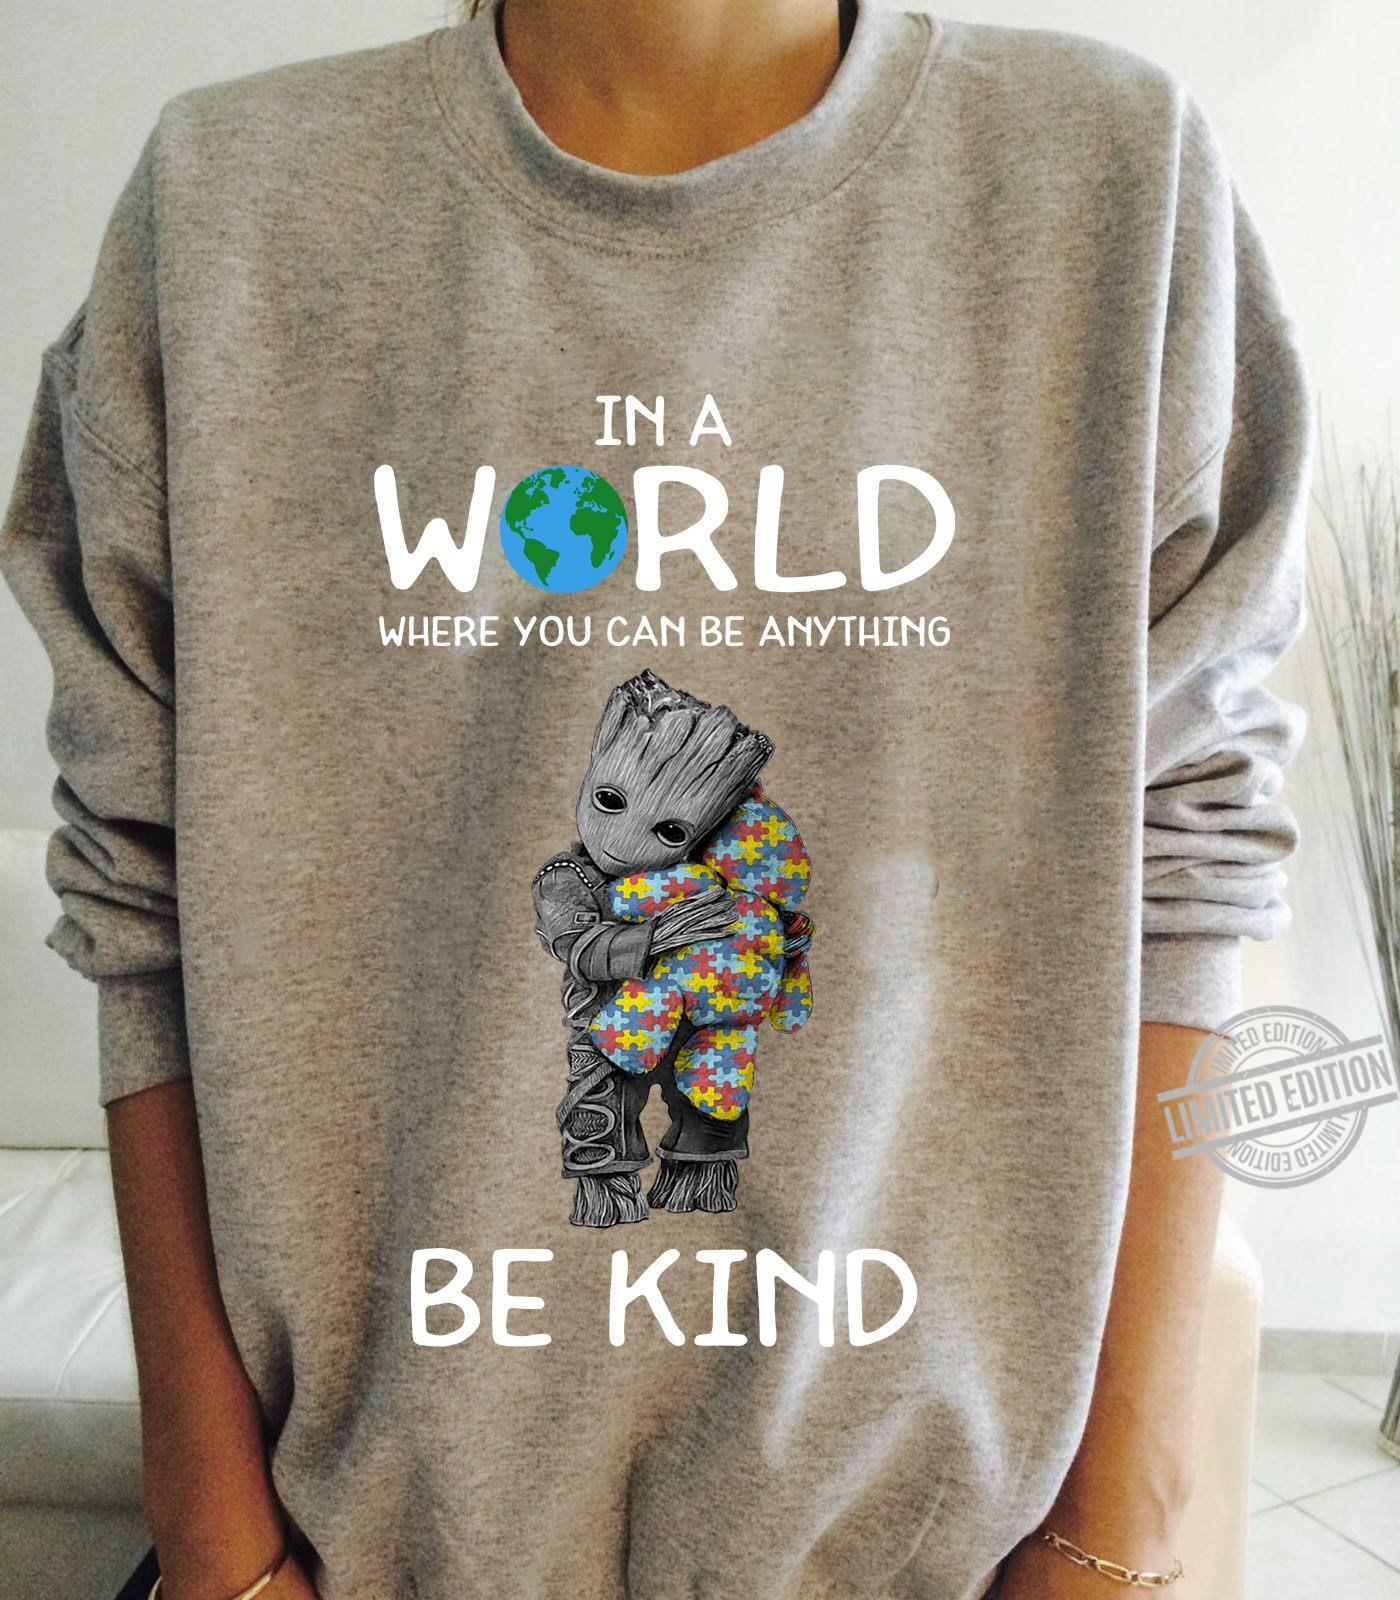 Baby Groot Hug Autism In A World Where You Can Be Anything Be Kind Shirt